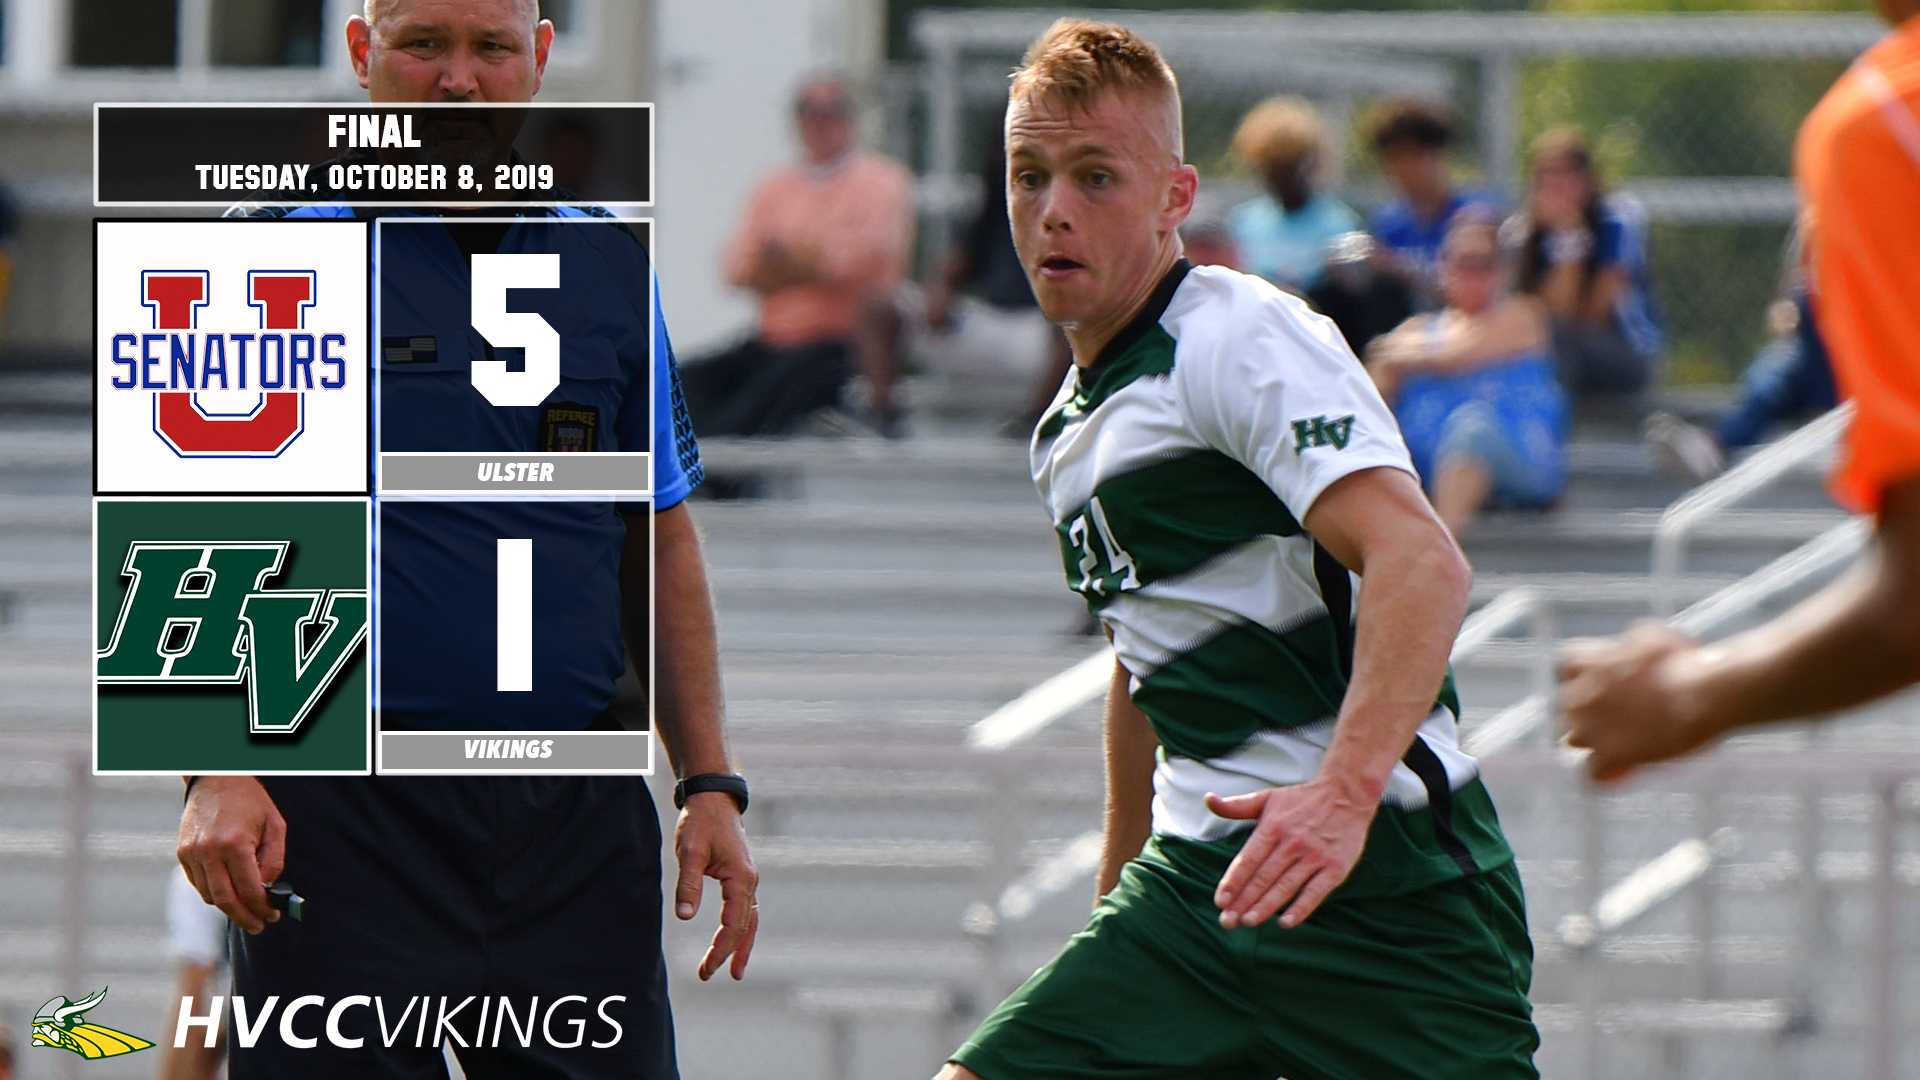 Ulster defeated Men's Soccer 5-1 on Oct. 8, 2019.